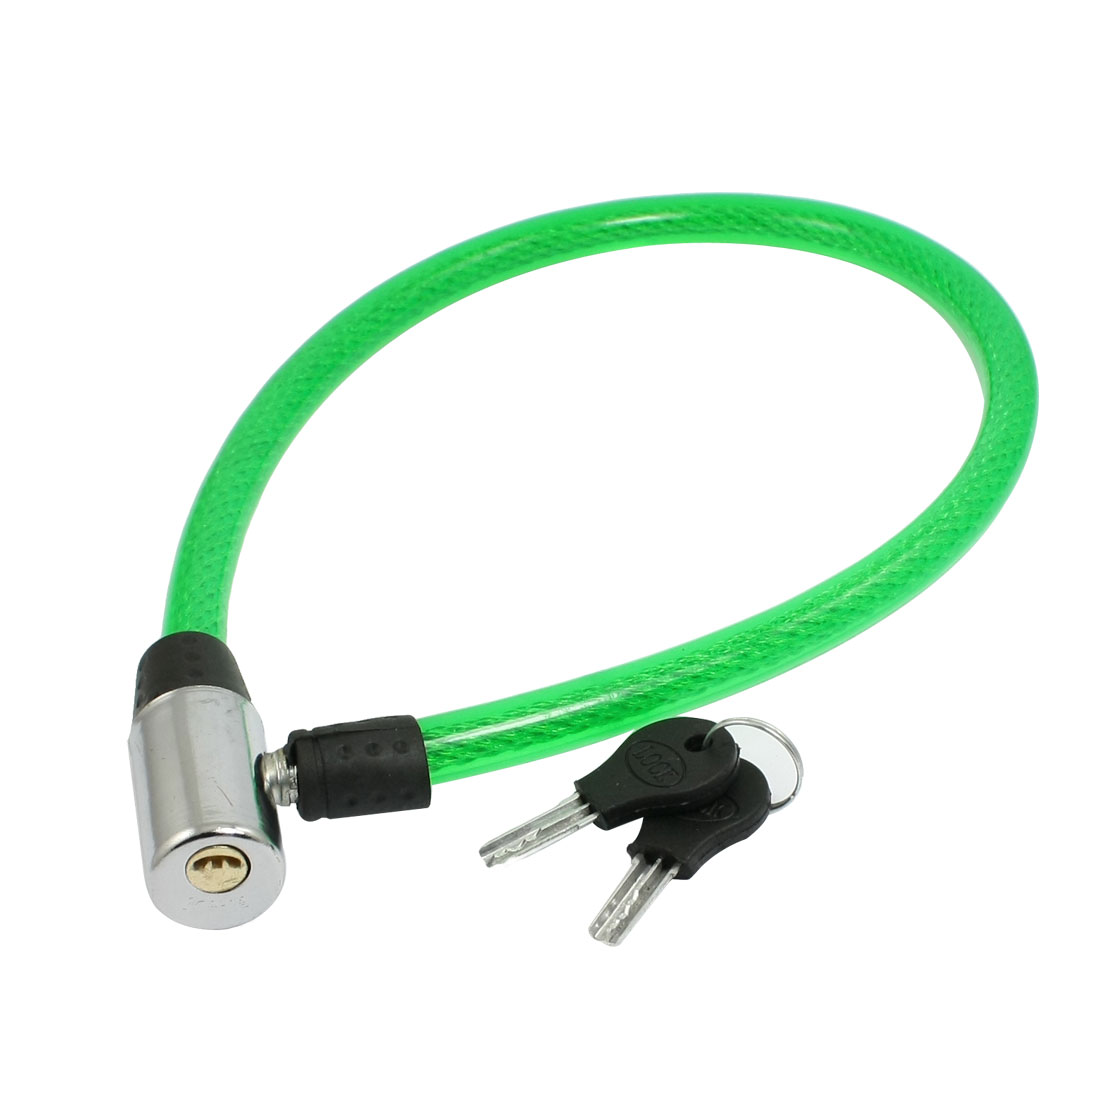 "24.4"" Green Flexible Bike Bicycle Motorcycle Security Cable Lock w Keys"